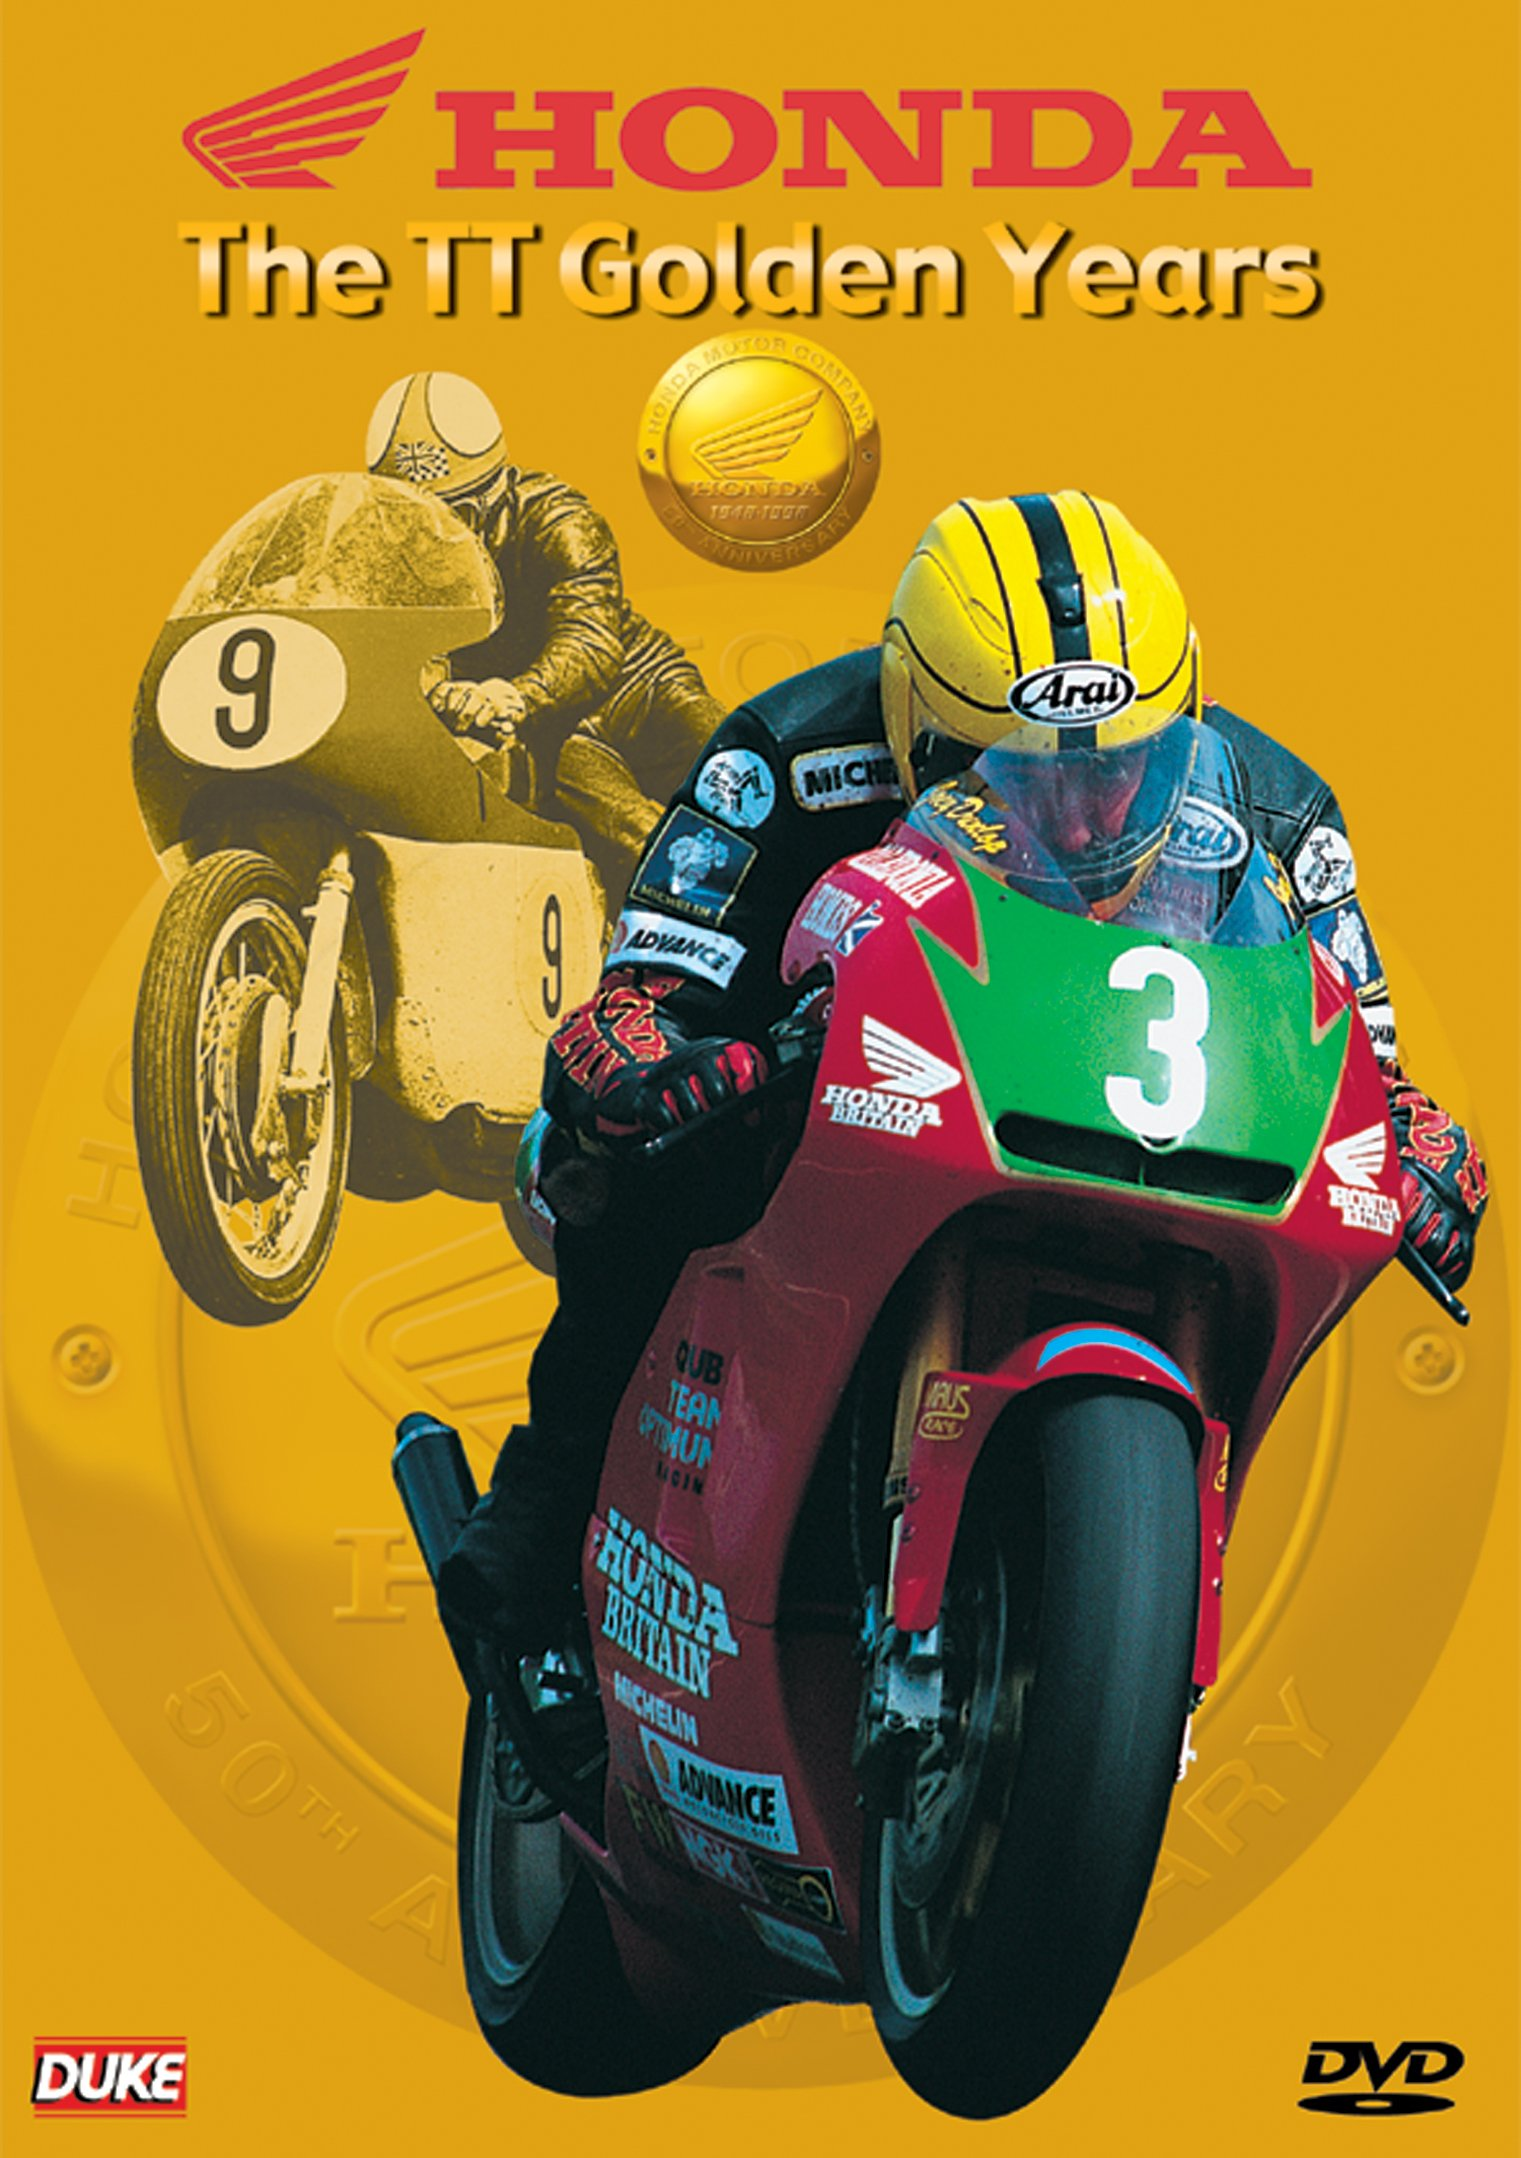 DVD : Honda The Tt Golden Years (DVD)